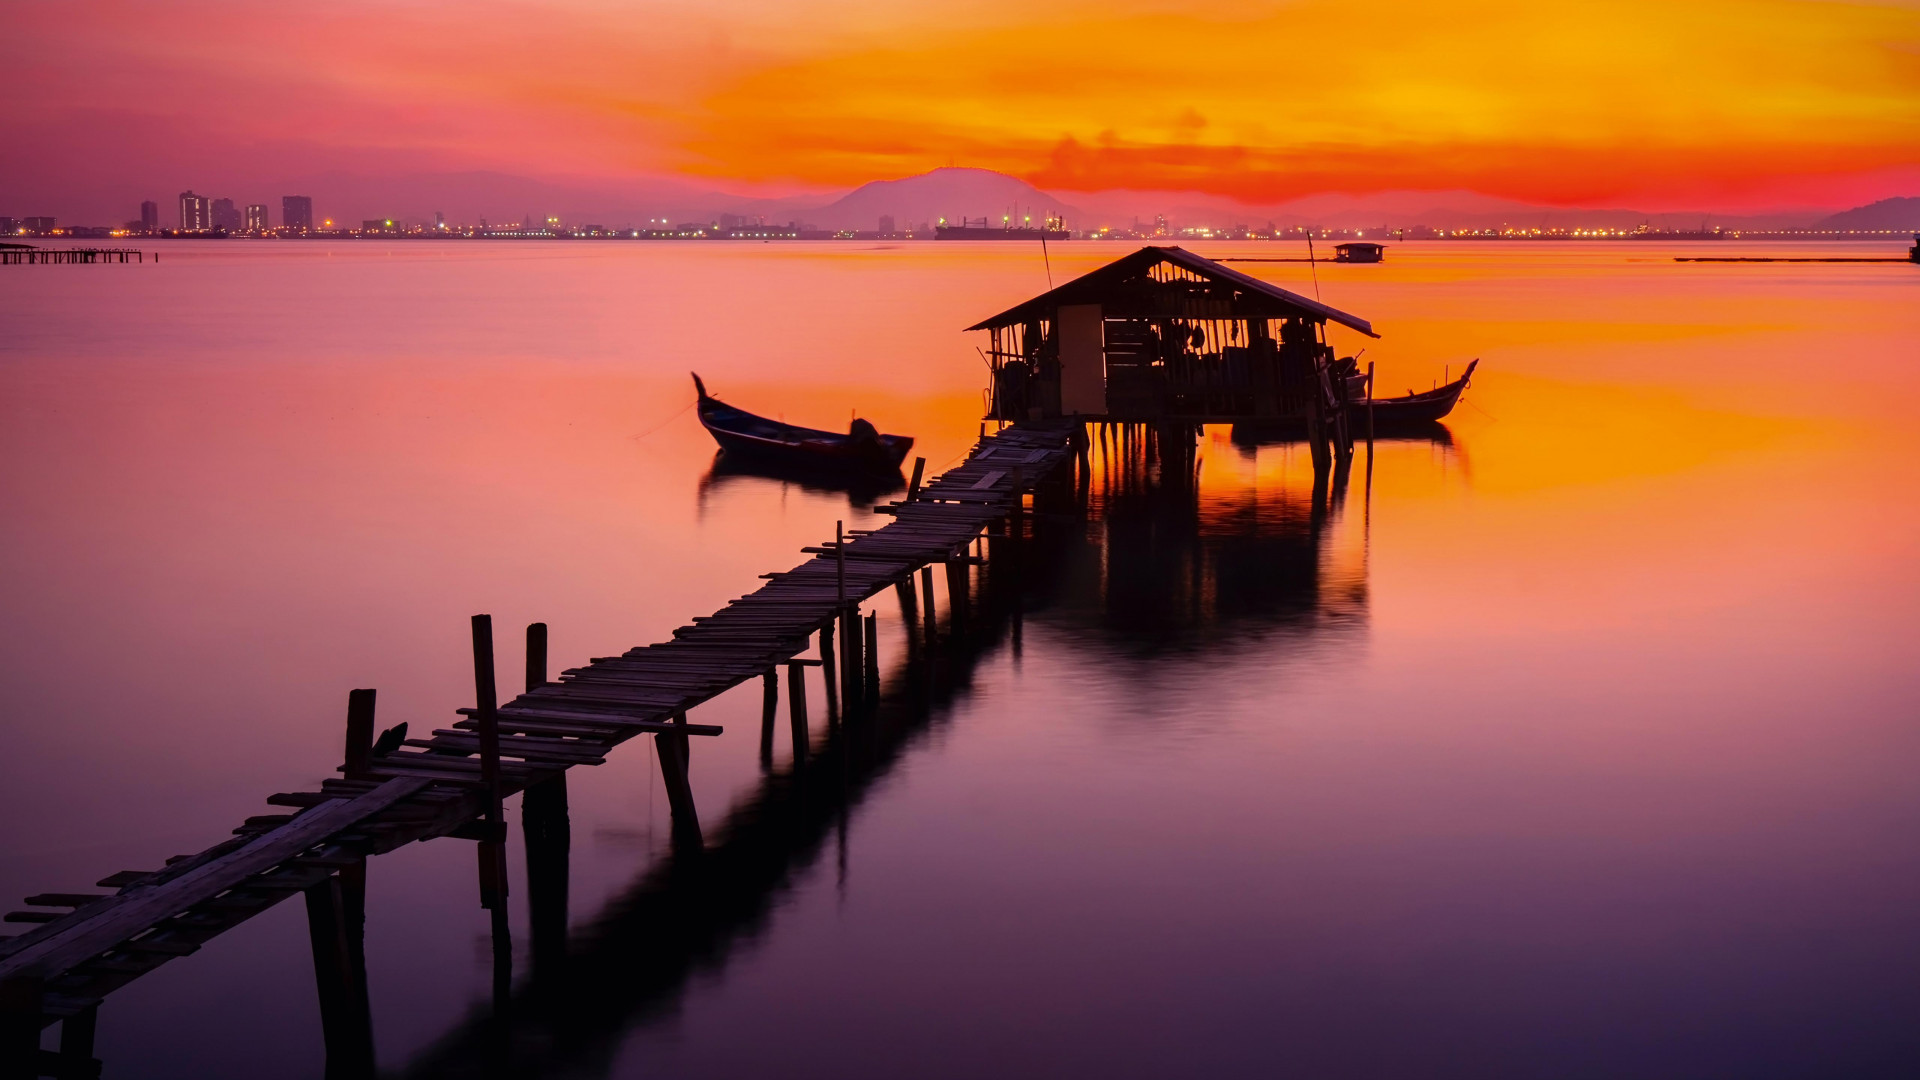 Thai jetty and boat